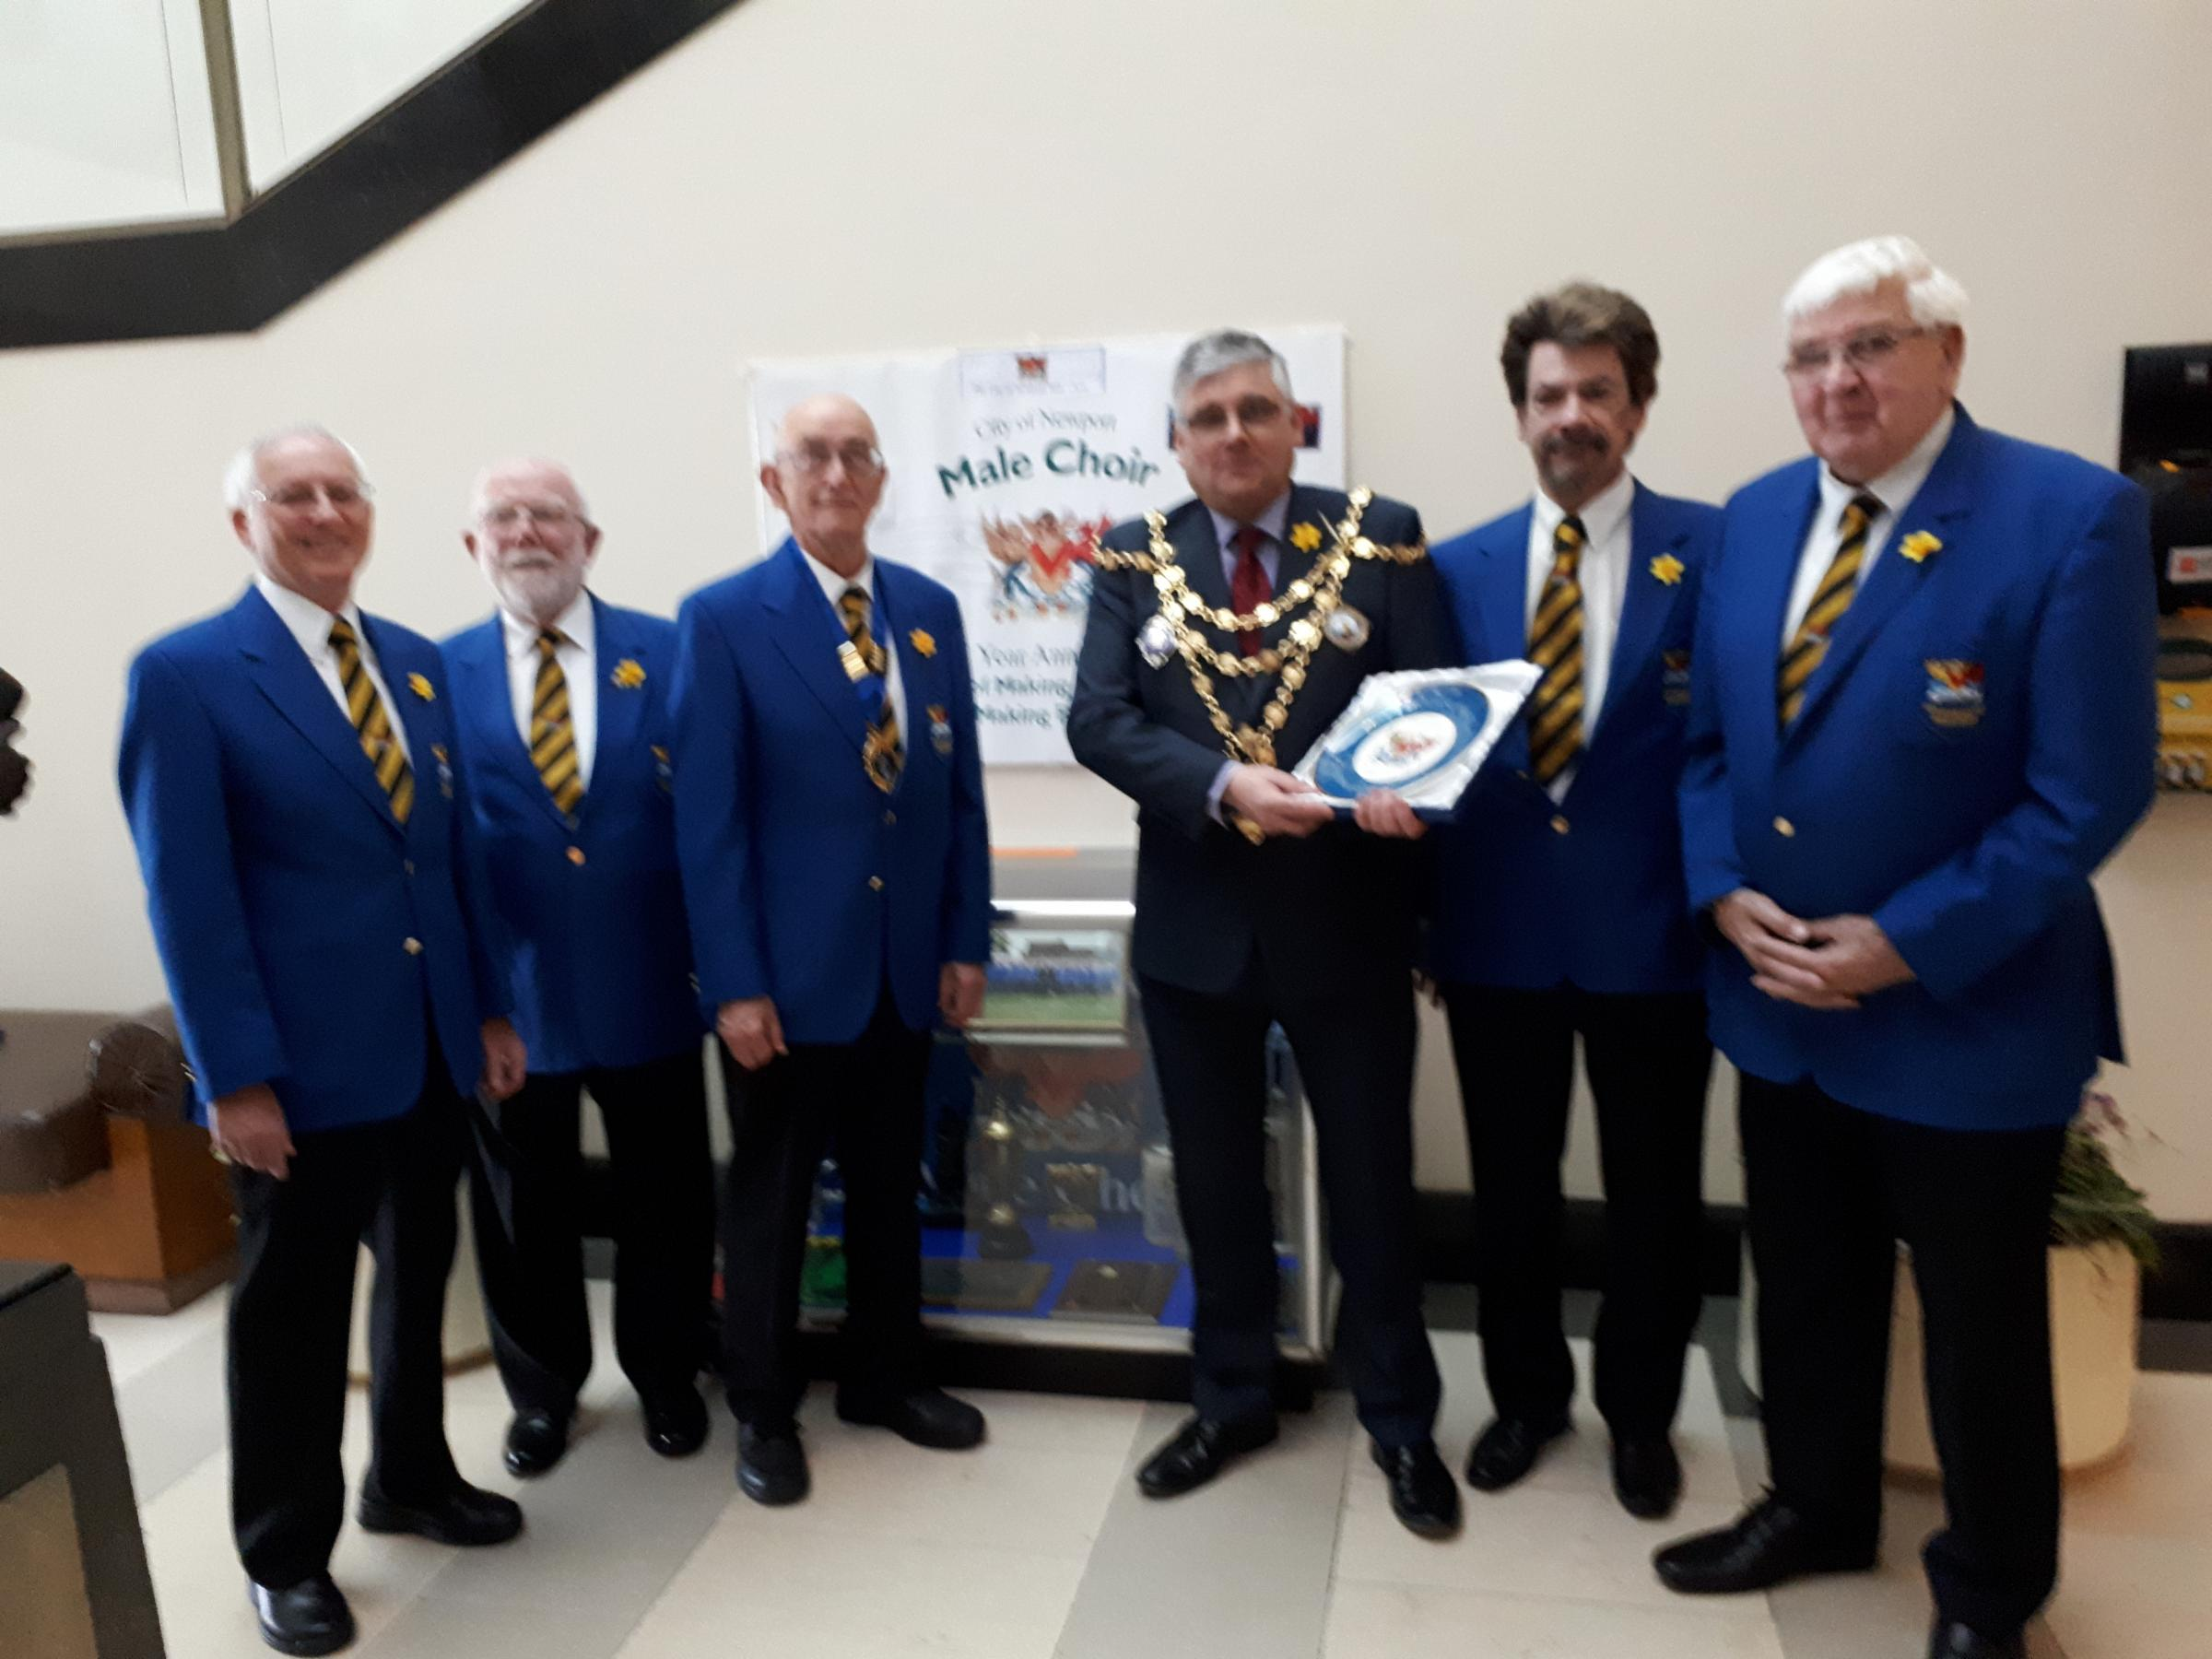 UNVEILING: Mayor of Newport, Cllr David Fouweather, unveils a display at Newport Civic Centre to mark Newport Male Choir's 75th anniversary year